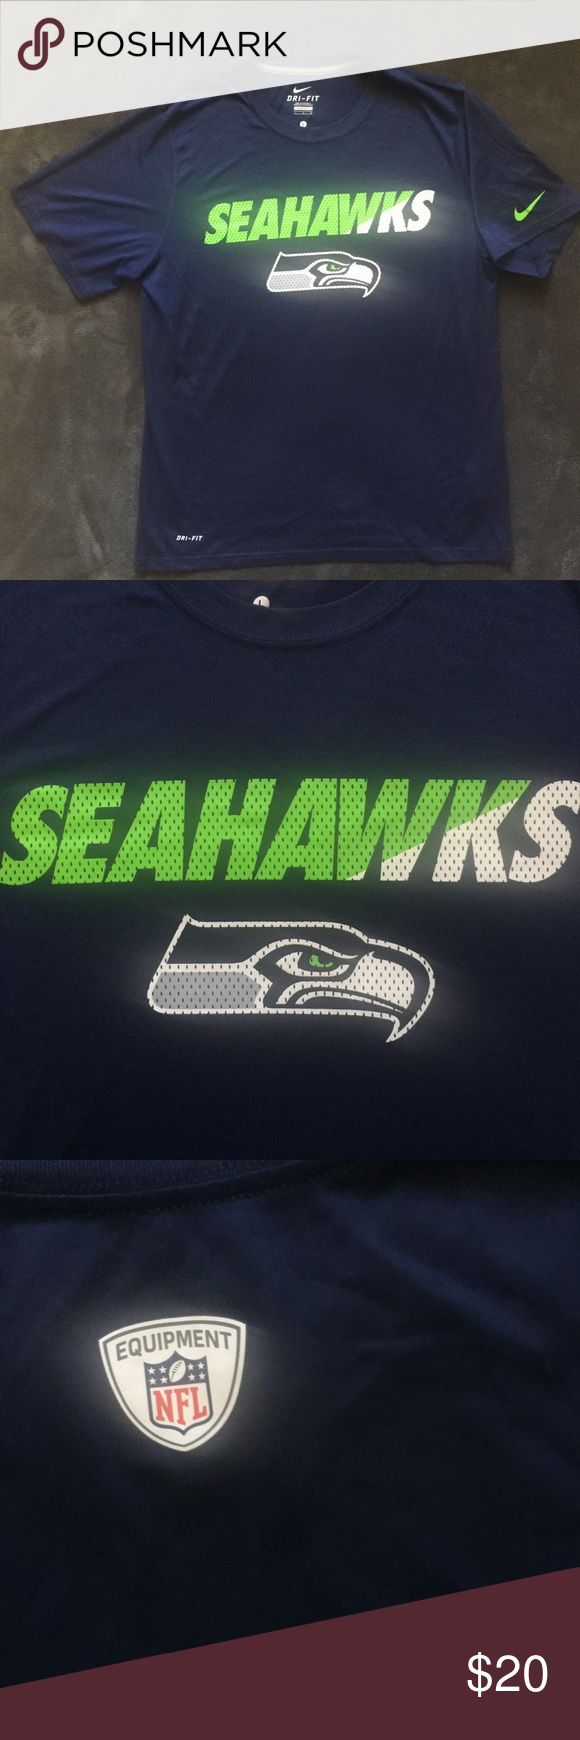 Nike NFL Dry Fit Seattle Seahawks L T Shirt Great look pet free smoke free no errors Nike Shirts Tees - Short Sleeve